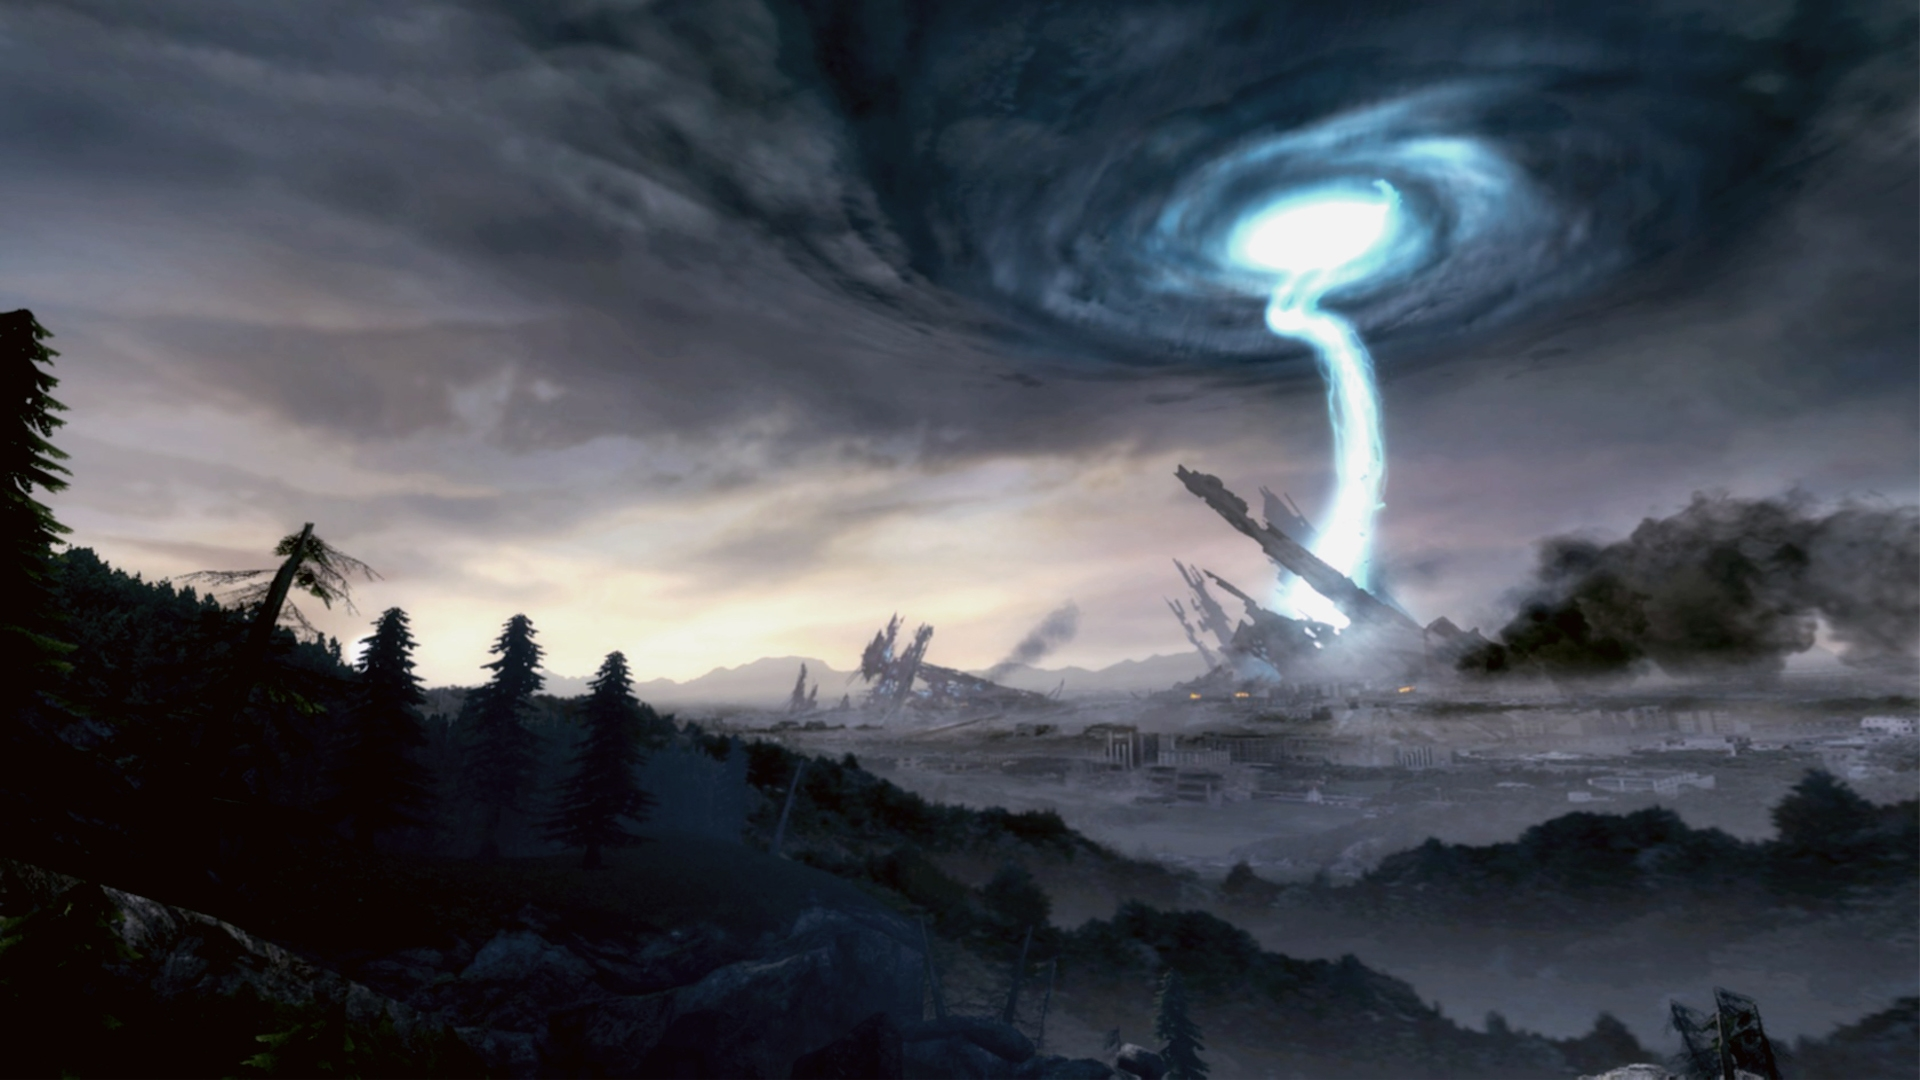 half life 2 wallpapers high quality download free